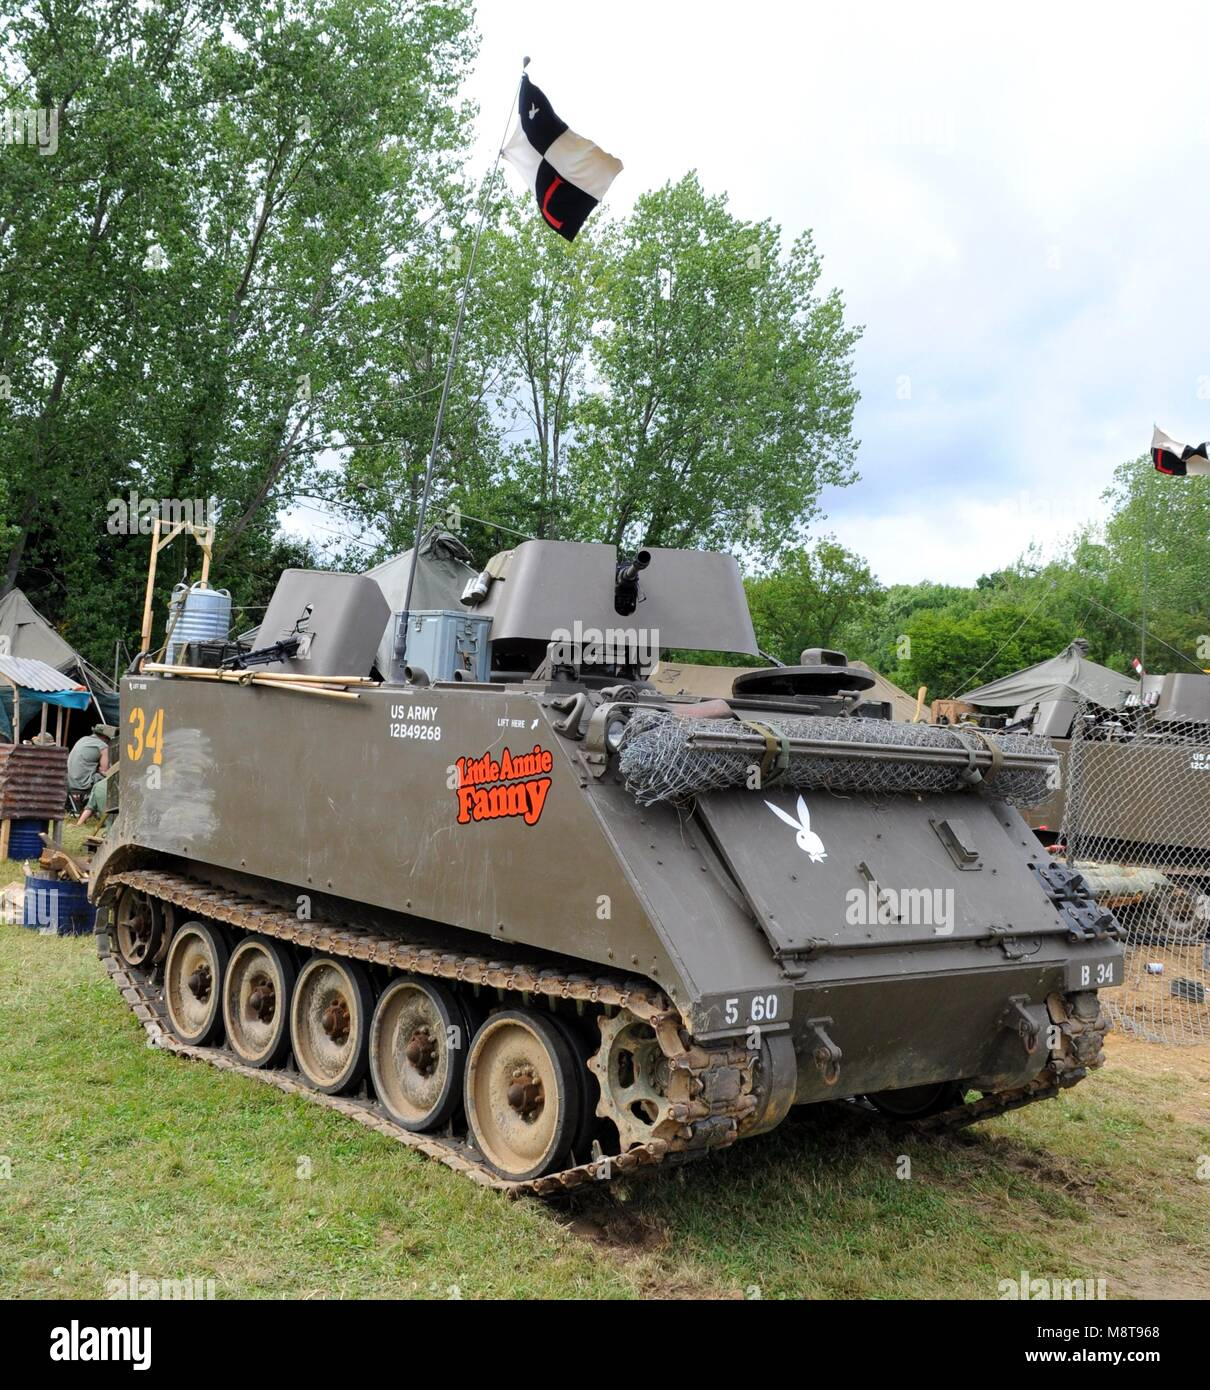 M113 armoured personnel carrier at the 2017 War and Peace Revival at Hop Farm near Paddock Wood, Kent, UK. - Stock Image